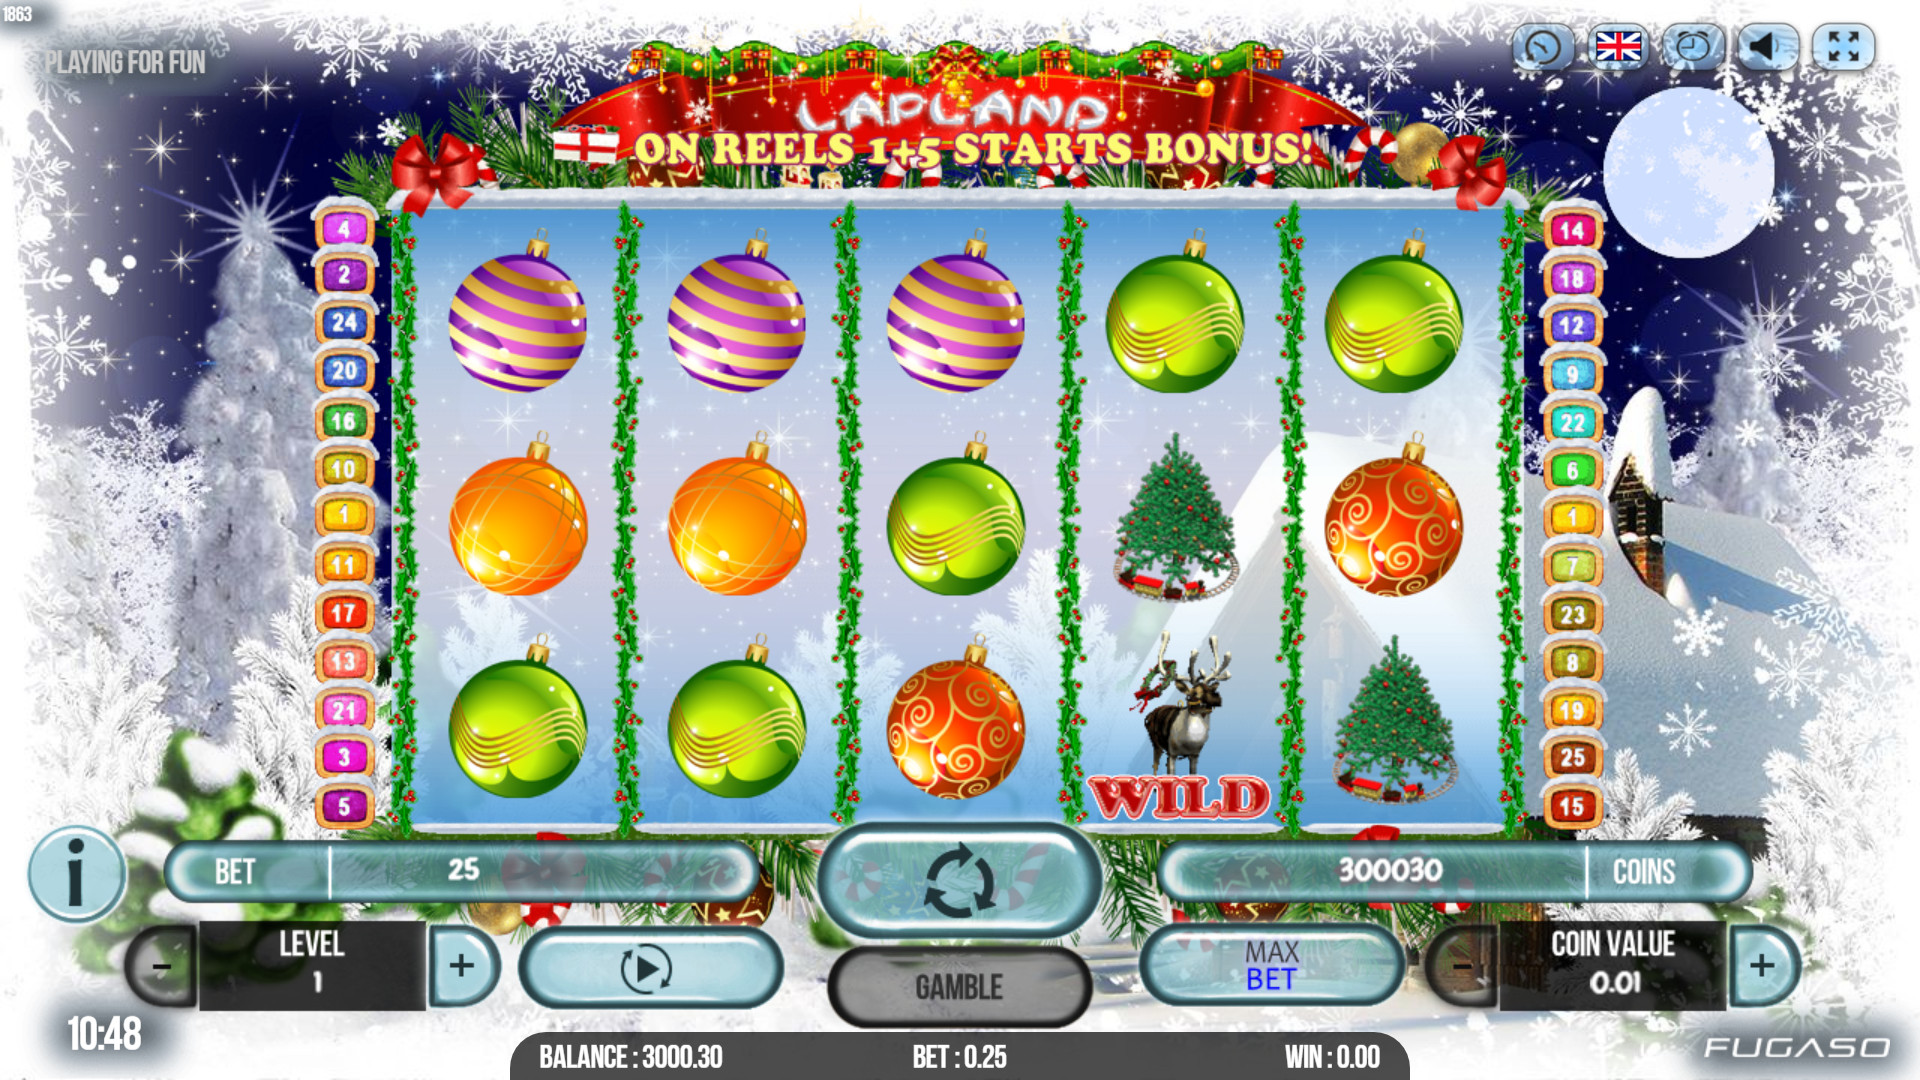 Lapland Fugaso slot machine